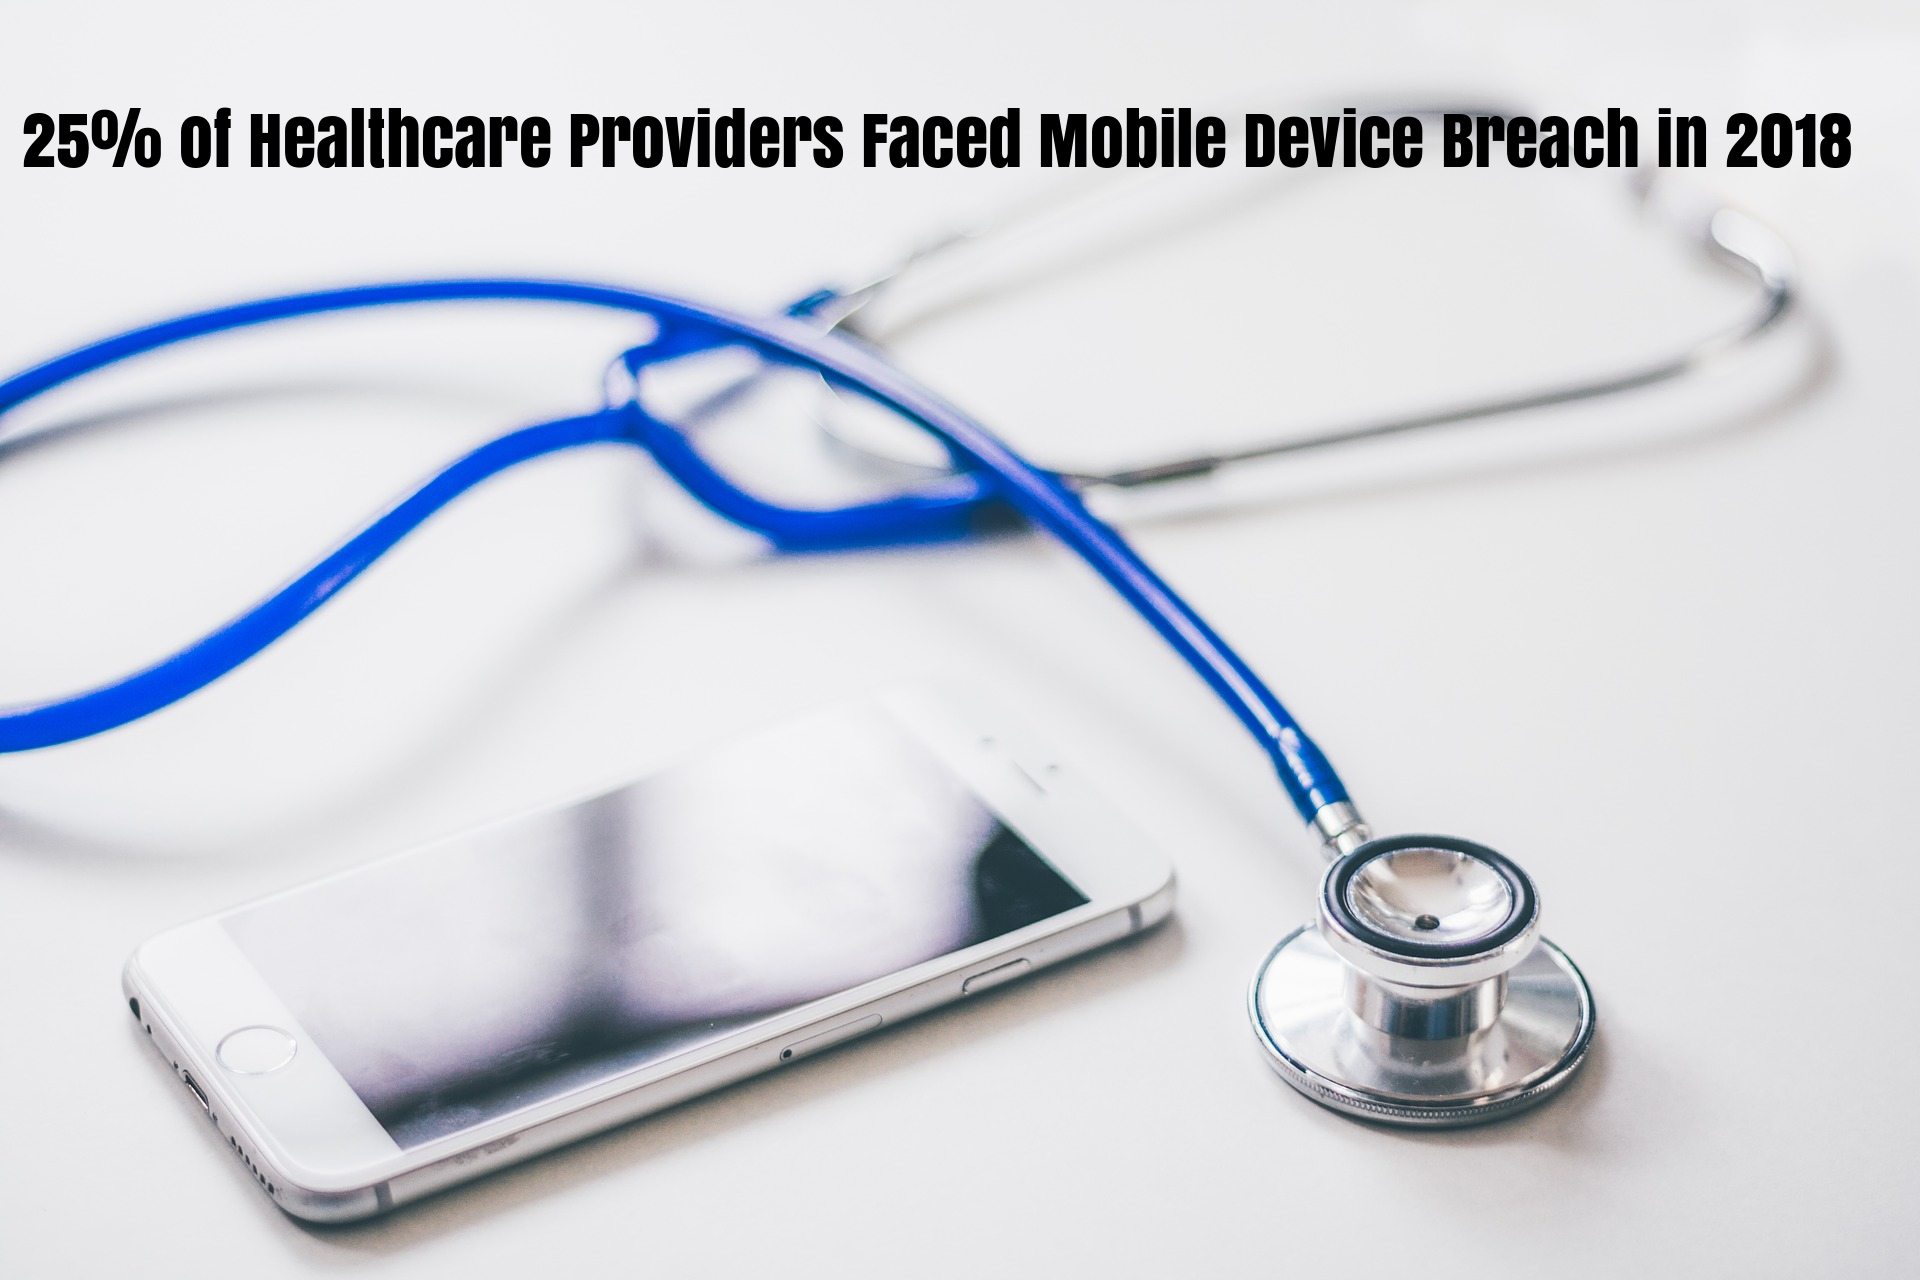 25% of Healthcare Providers Faced Mobile Device Breach in 2018